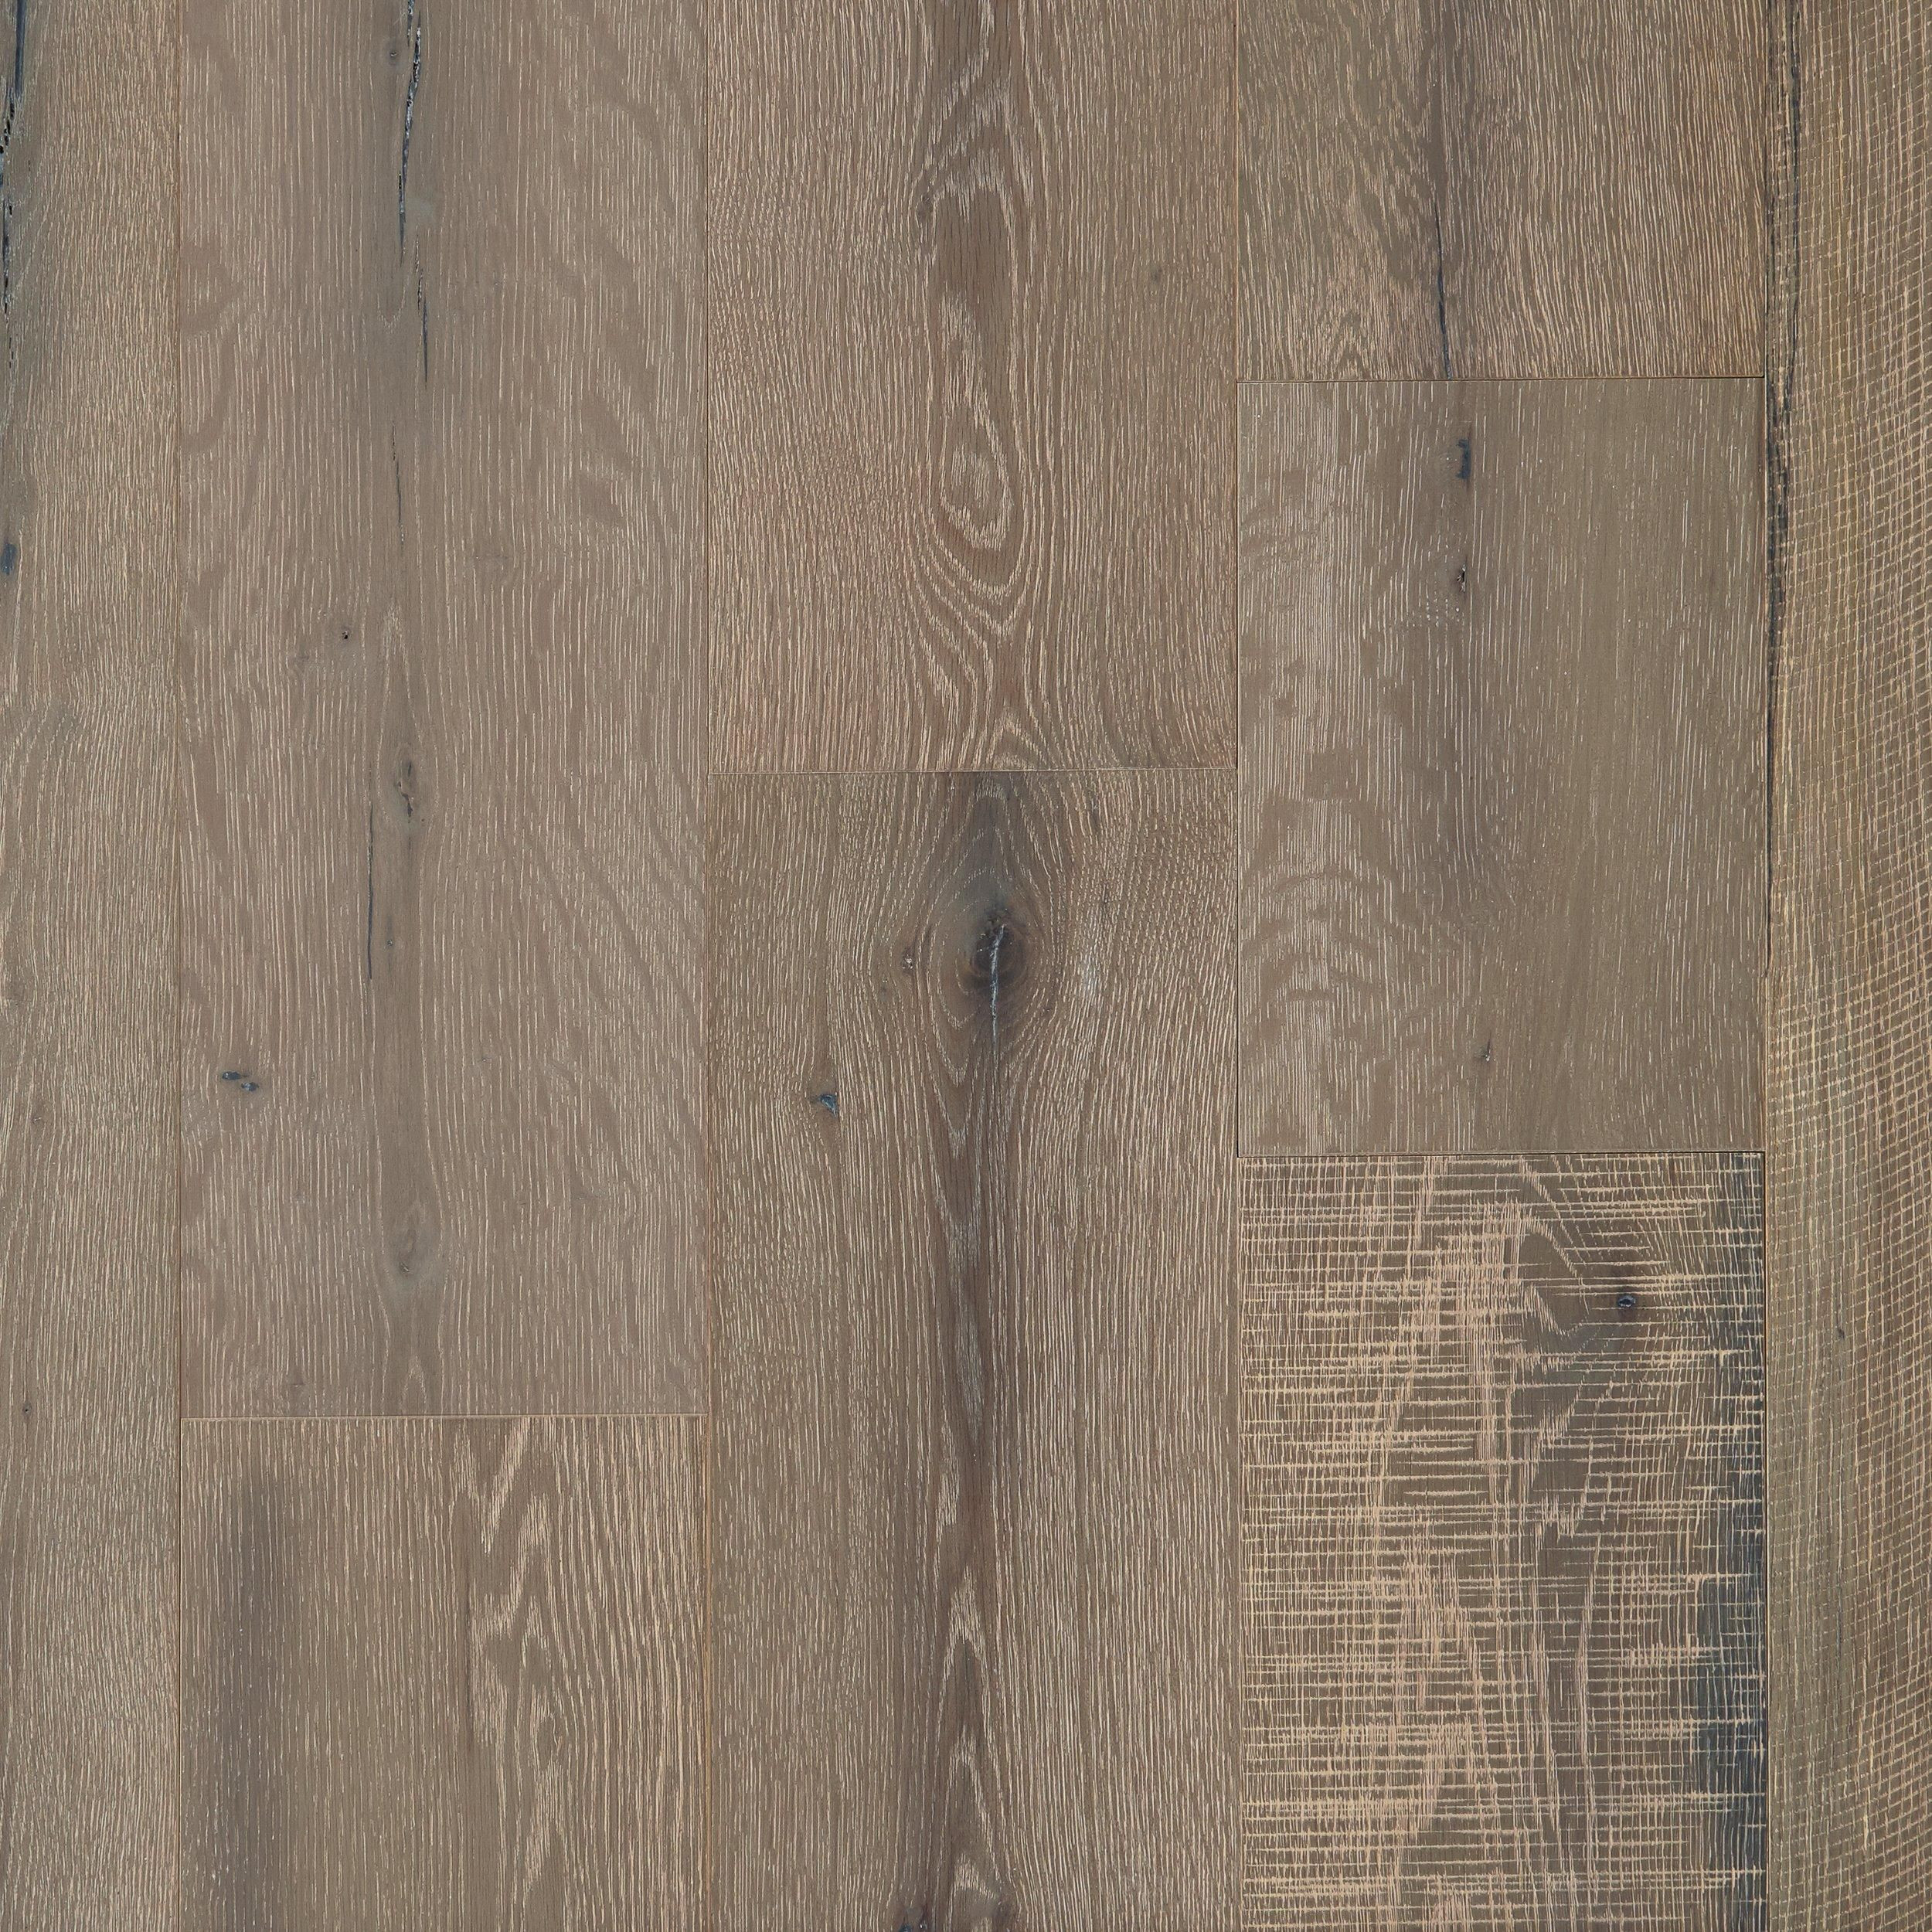 white oak plank hardwood flooring of grullo white oak distressed engineered hardwood products pertaining to grullo white oak distressed engineered hardwood